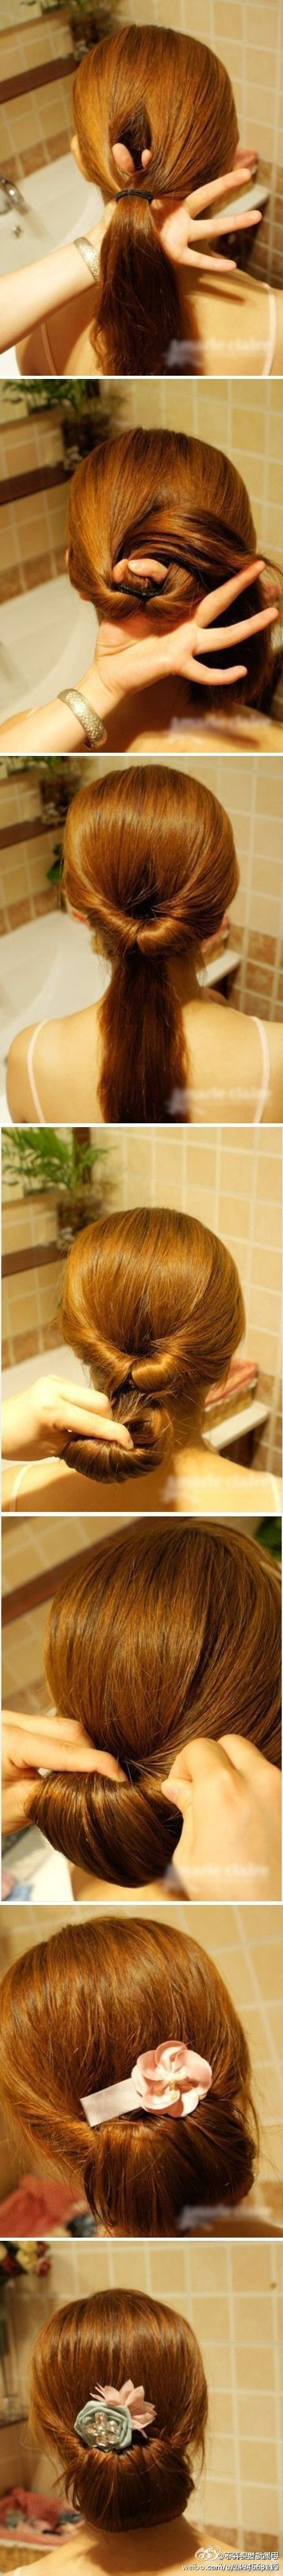 easy pull-through: Hair Ideas, Wedding Hair, Bridesmaid Hair, Long Hair, Hairstyle, Hair Style, Ponies Tail, Hair Buns, Low Buns